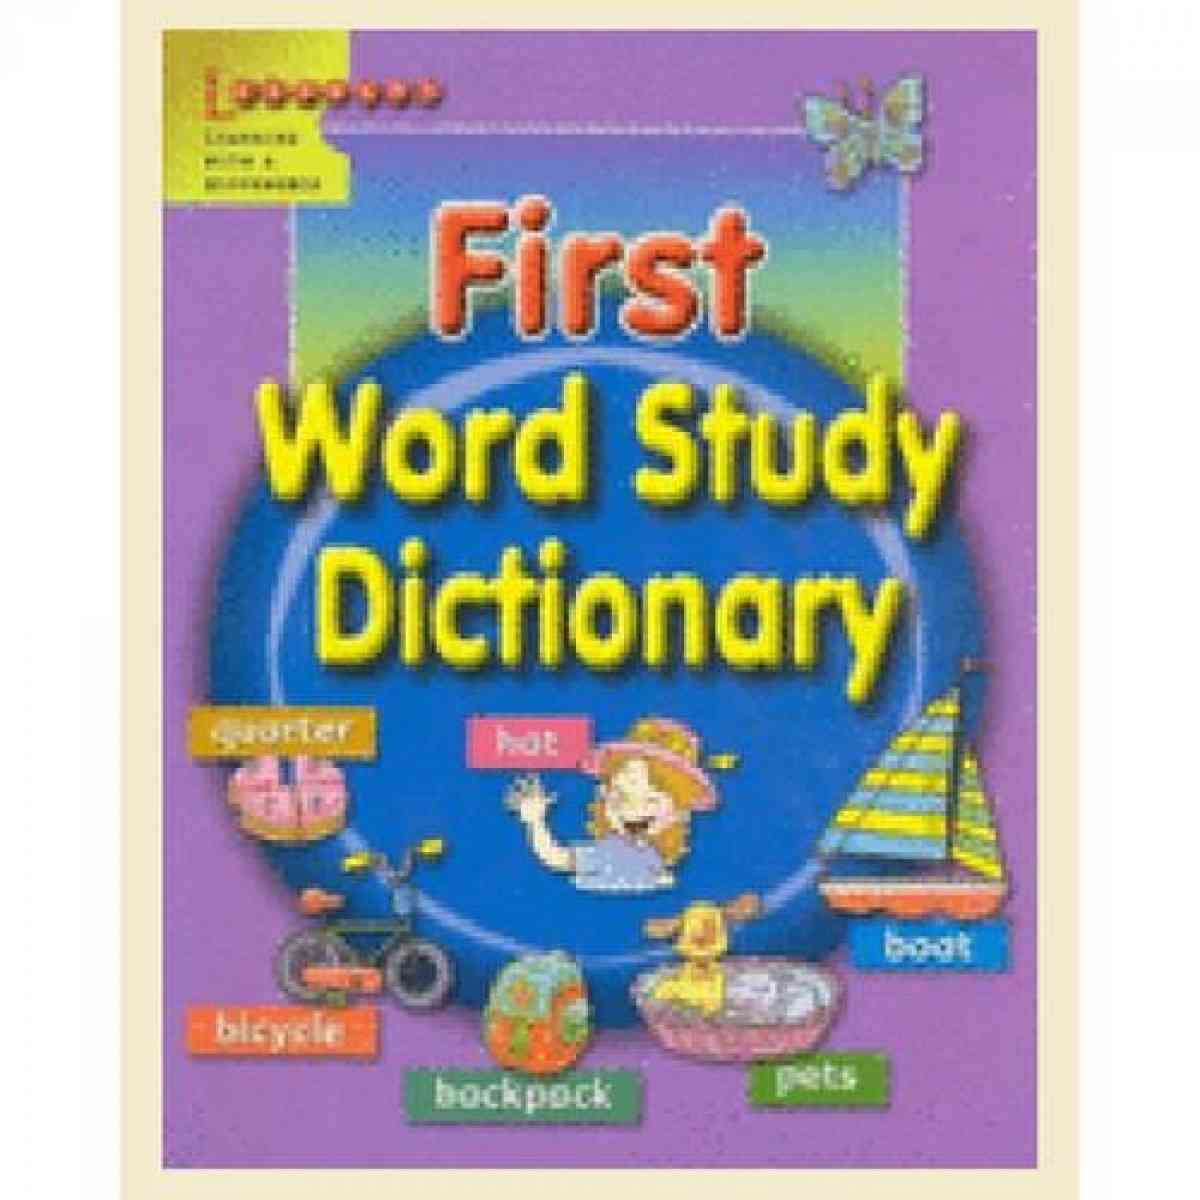 First Word Study Dictionary